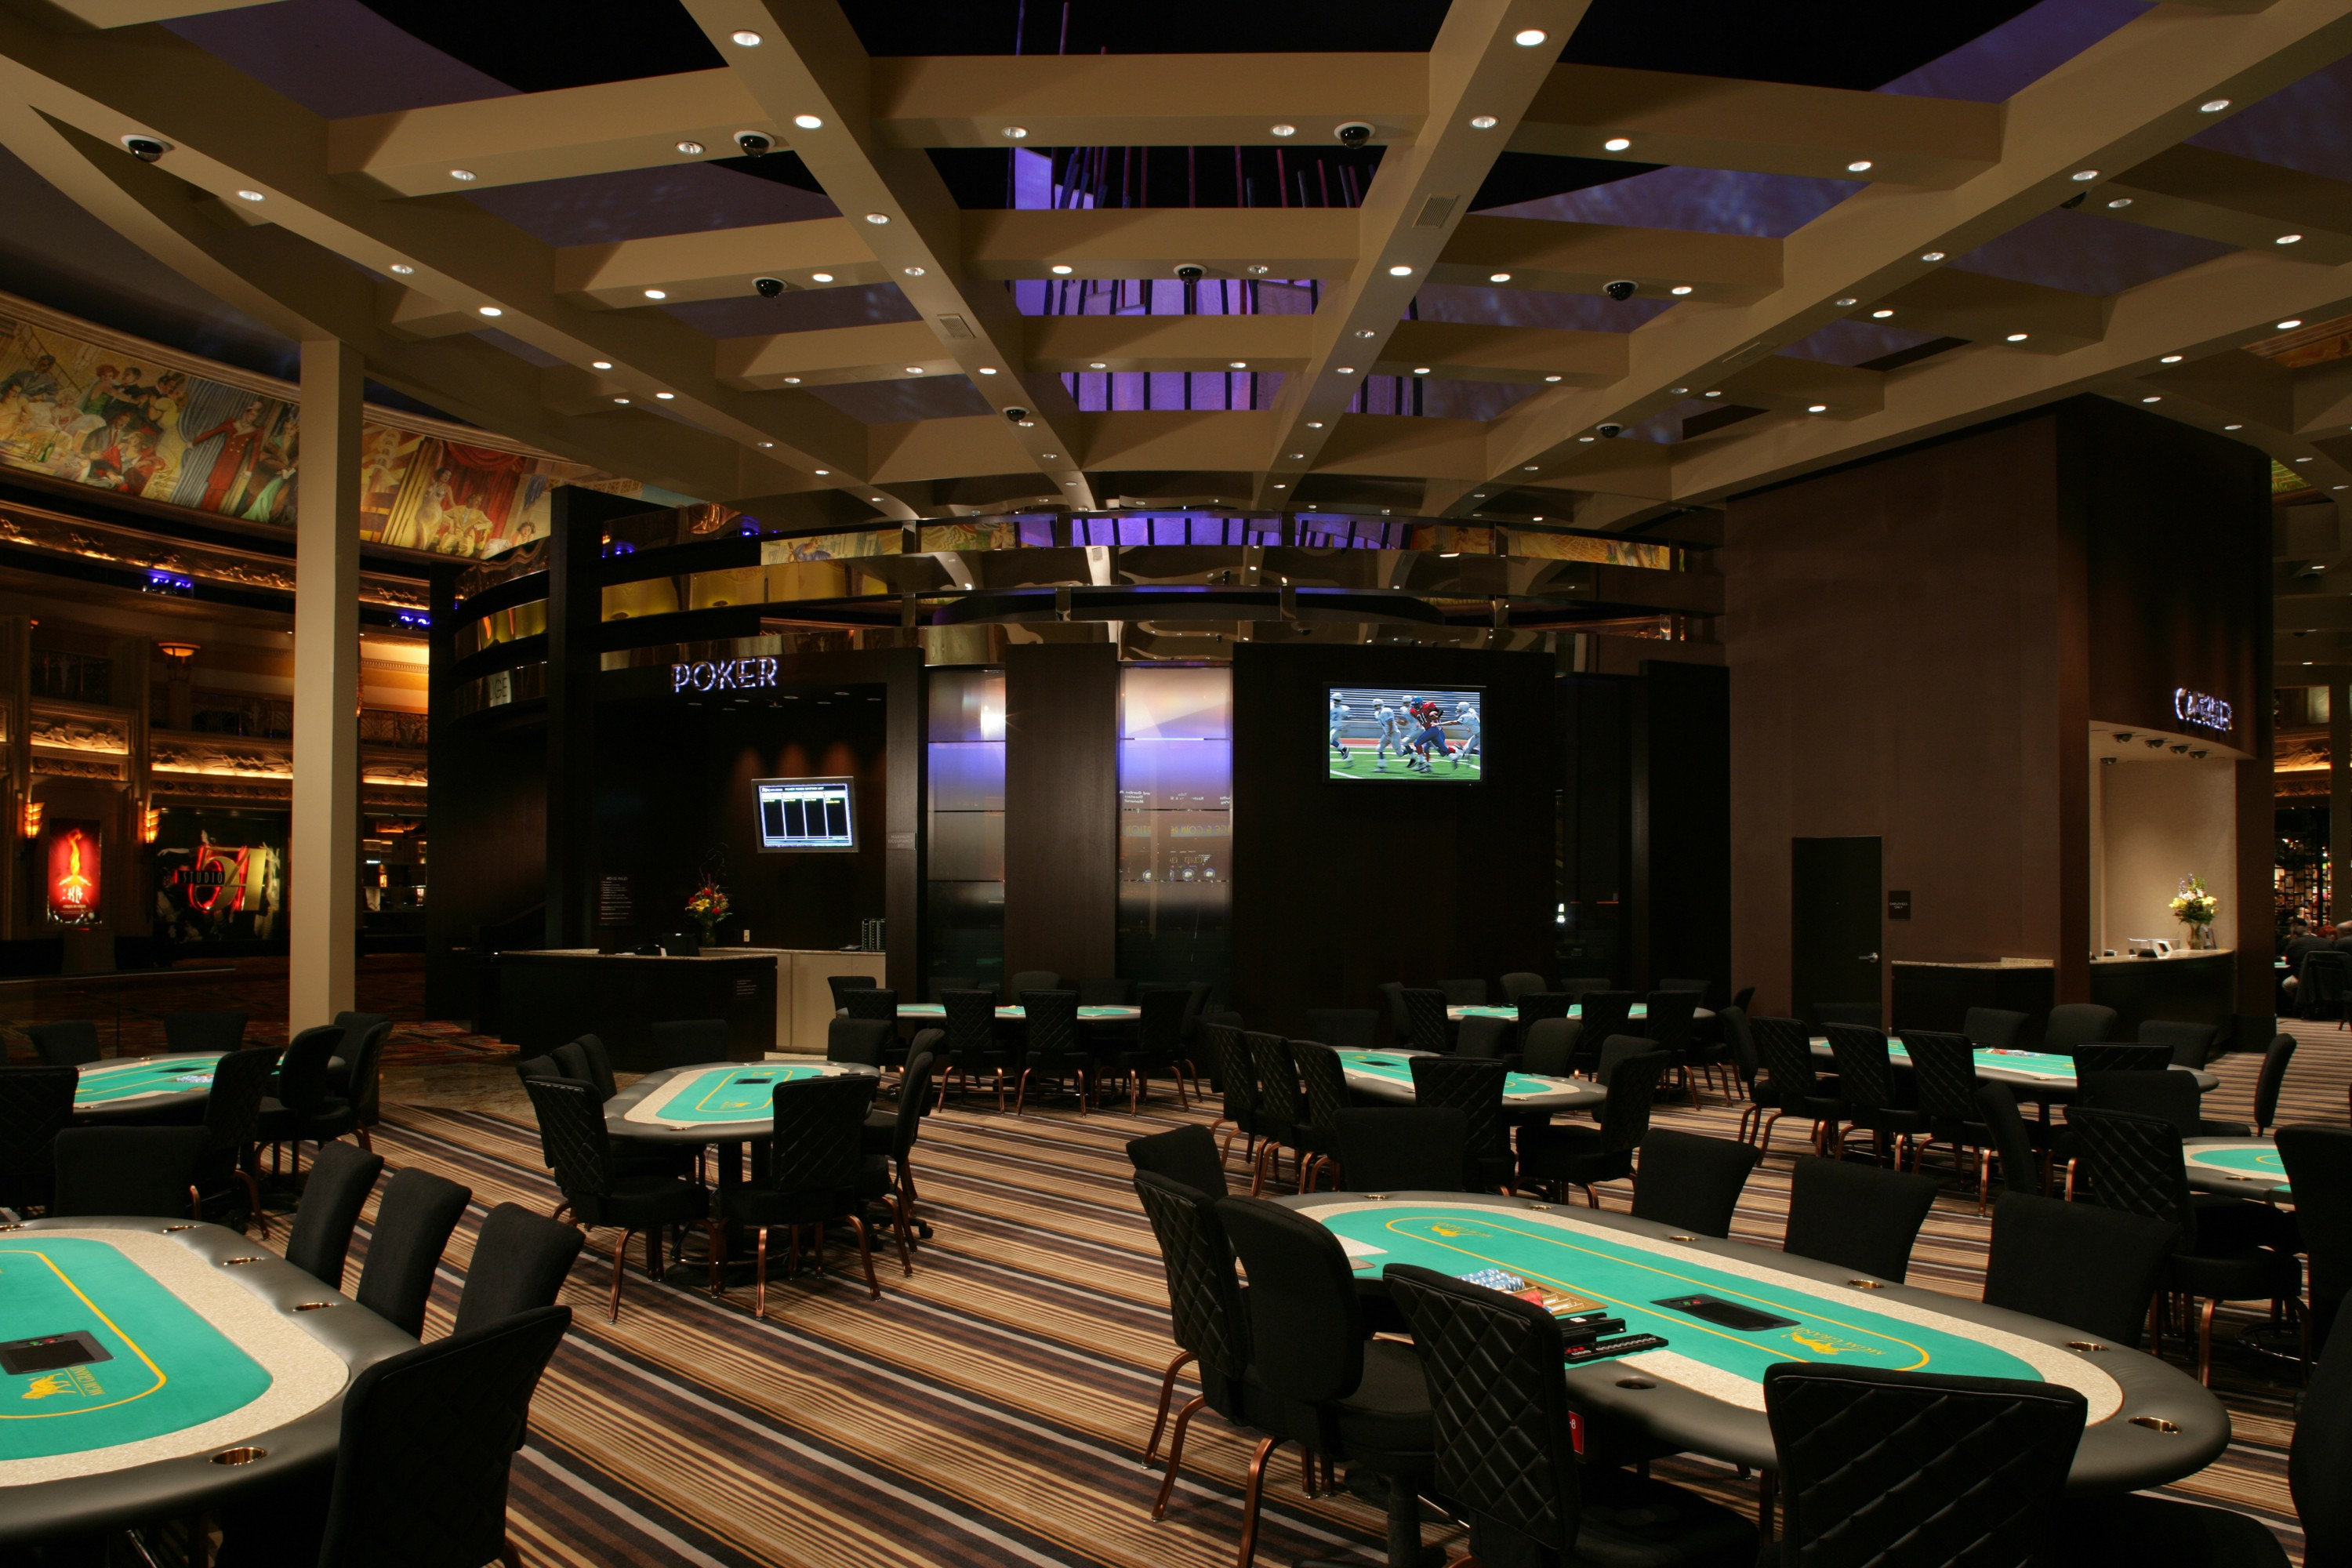 Dover downs poker room machines a sous sans telechargement casino 770